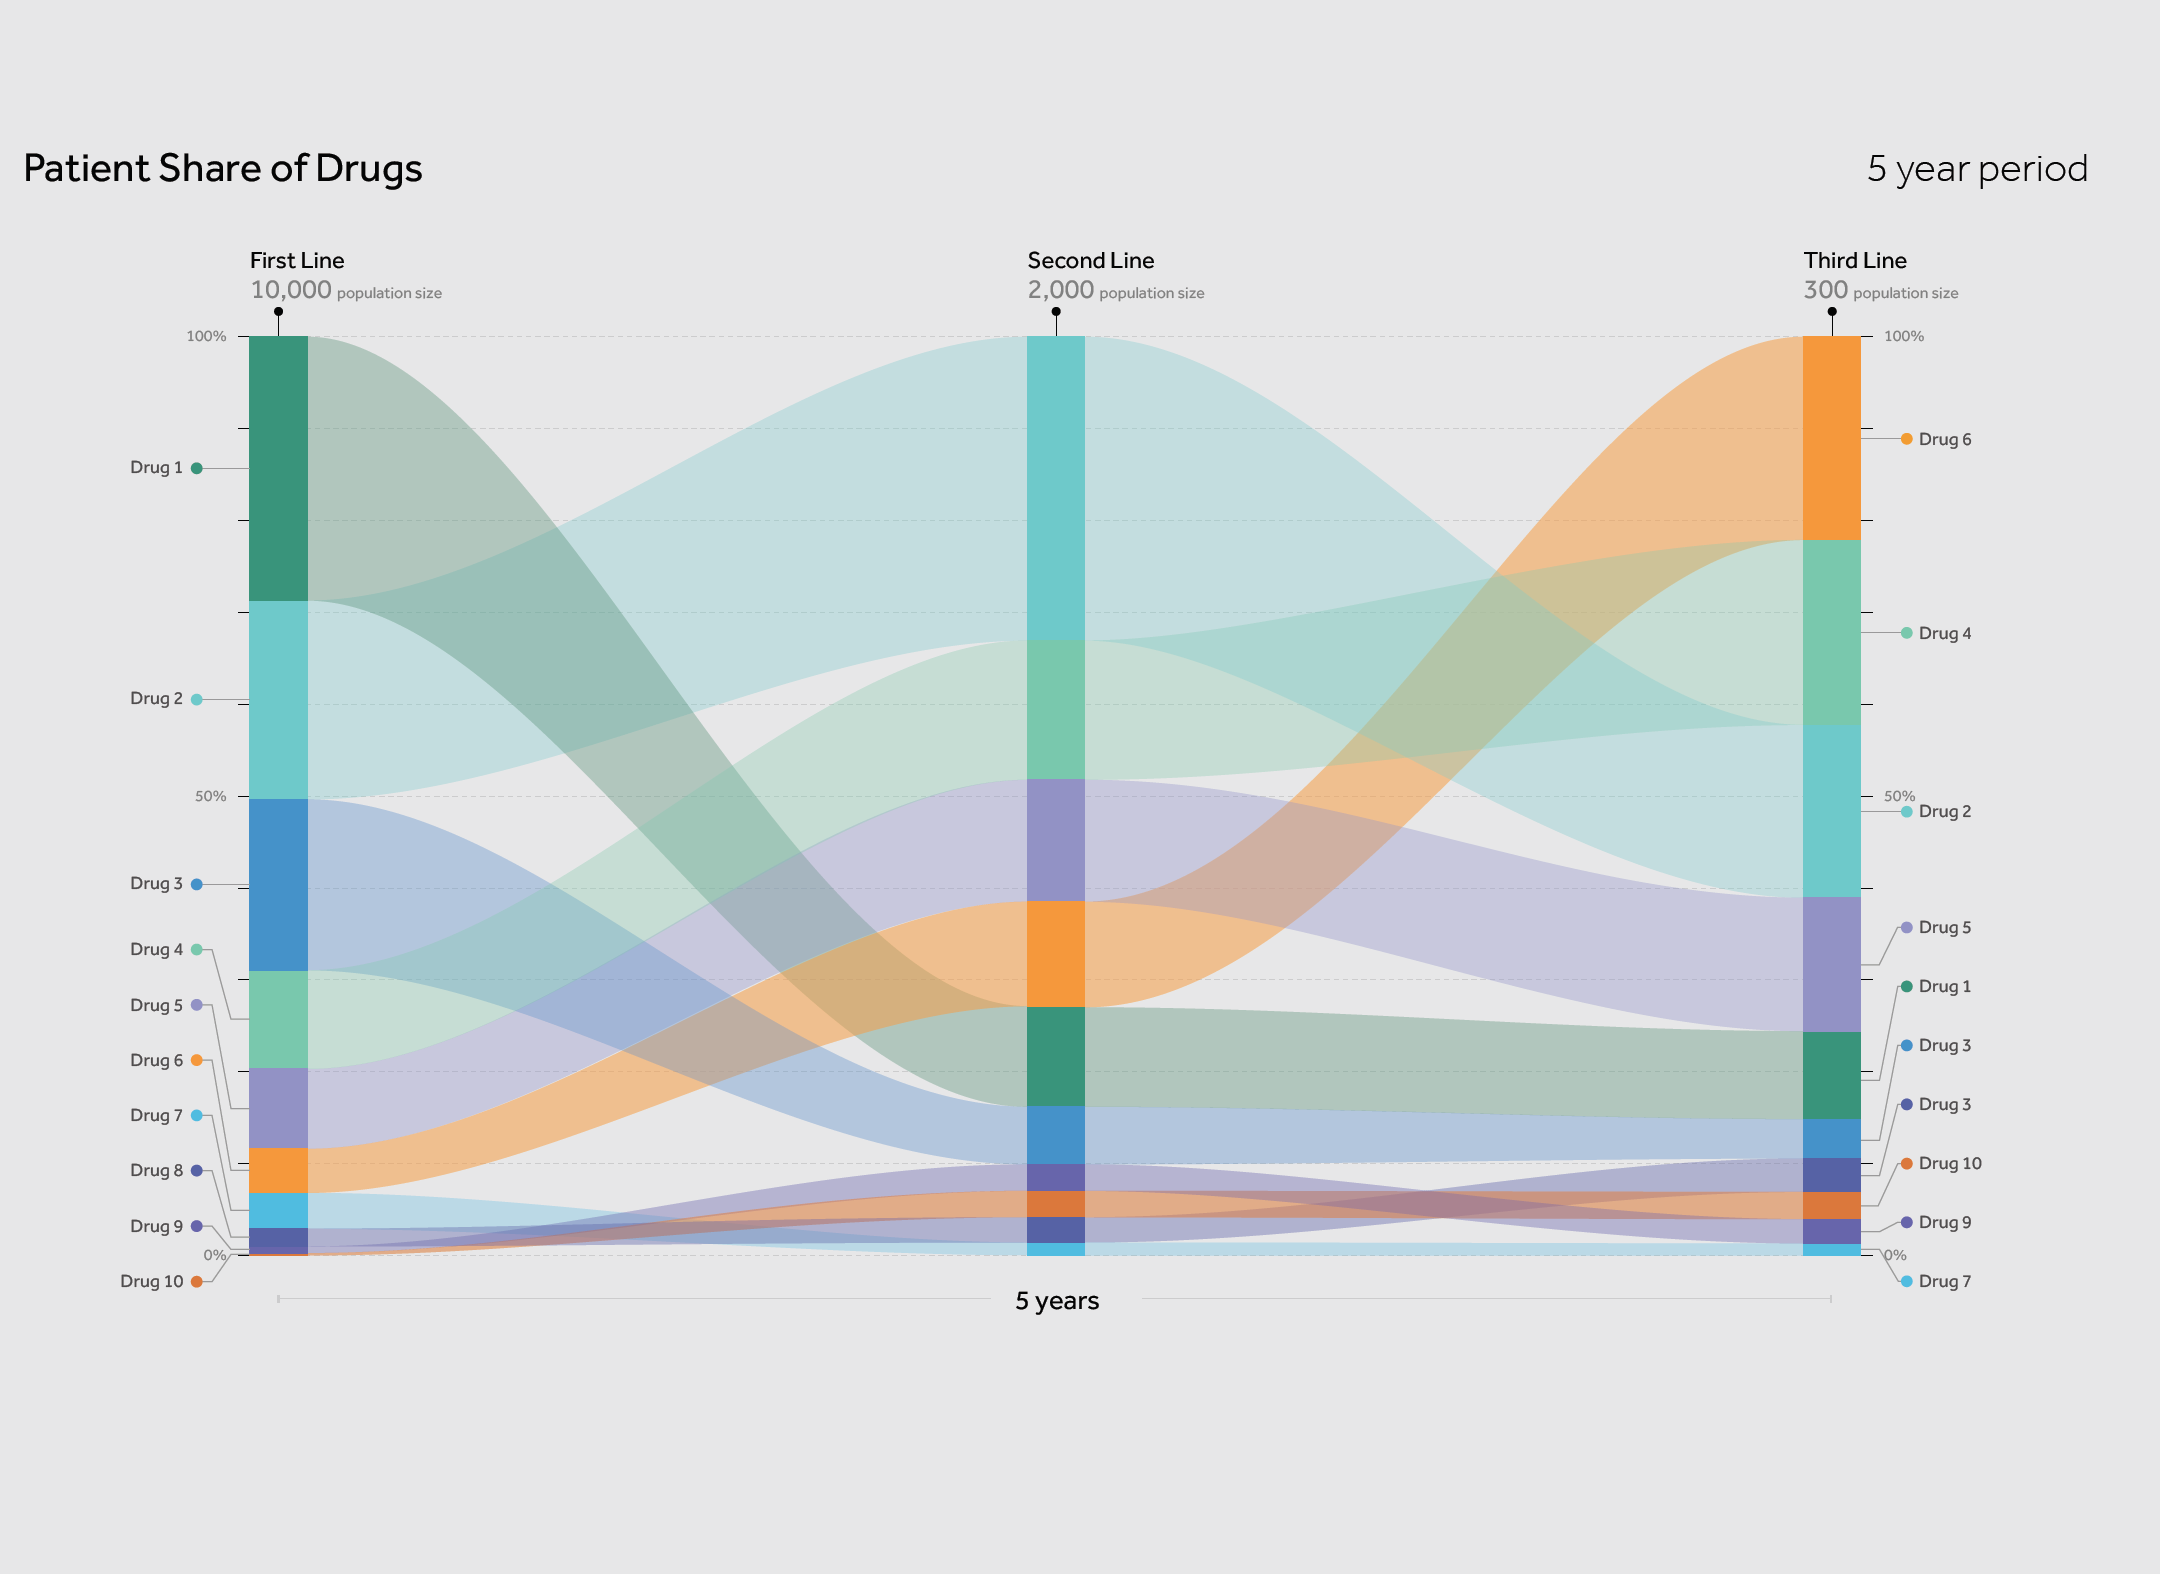 Sankey diagram illustrating the changes in patient share of drugs